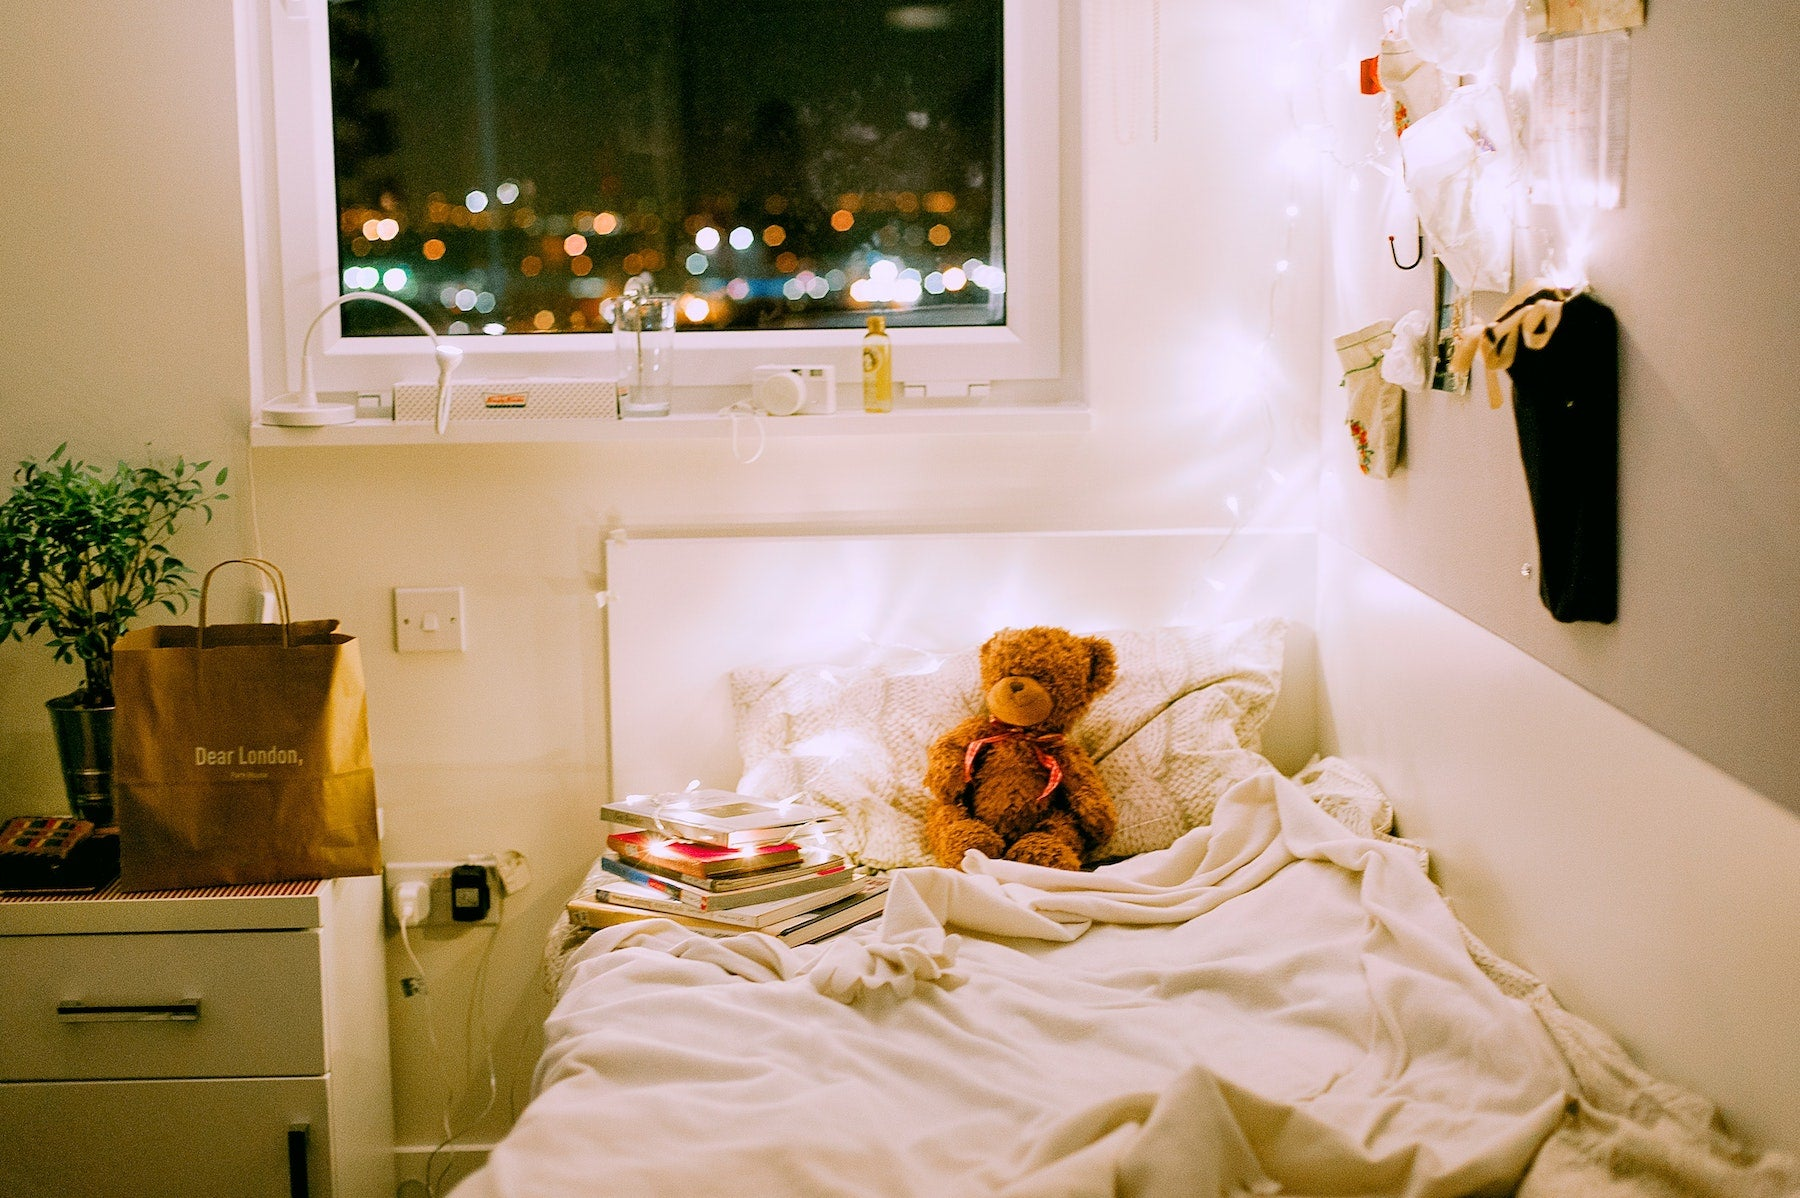 Feeling Homesick? Here's 5 Ways to Make Your Dorm Feel More Like Home